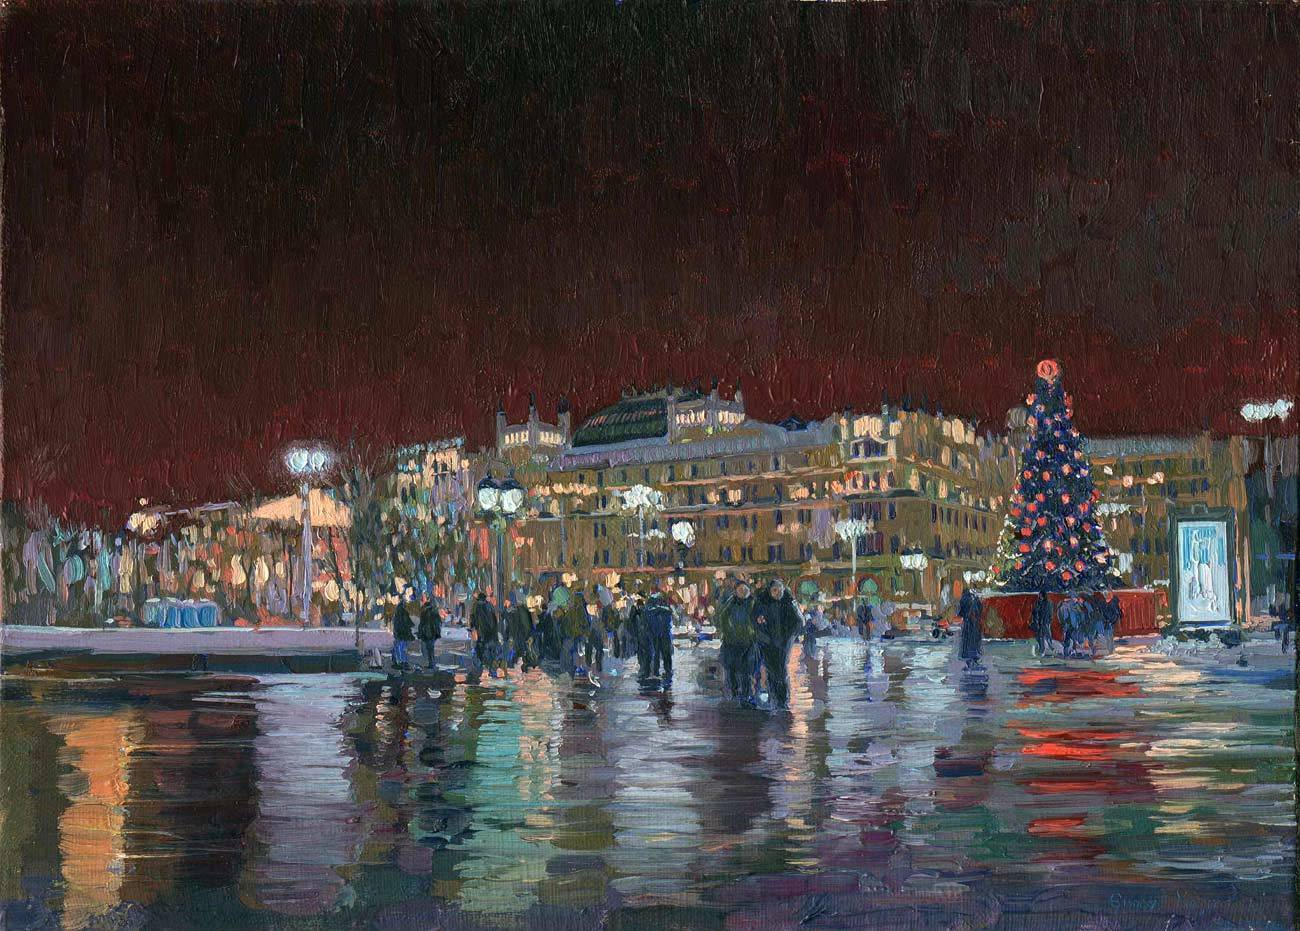 New Year in Moscow. Hotel Metropol. 2005. Canvas, oil. 35 x 25 cm.